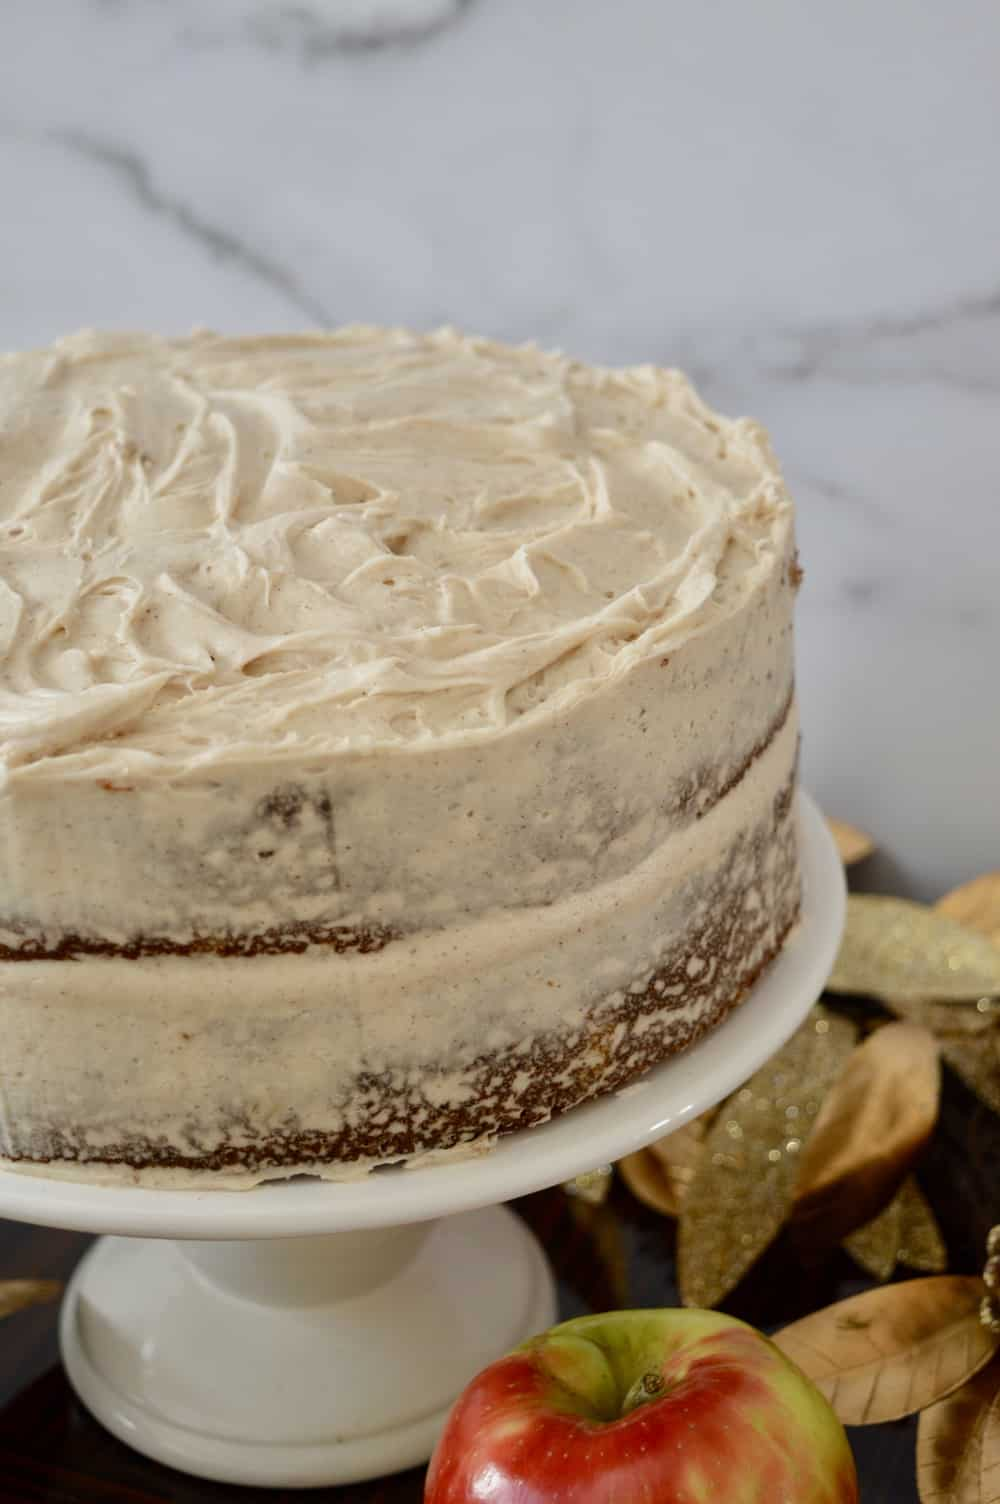 use bench scraper to great naked effect on the cake.